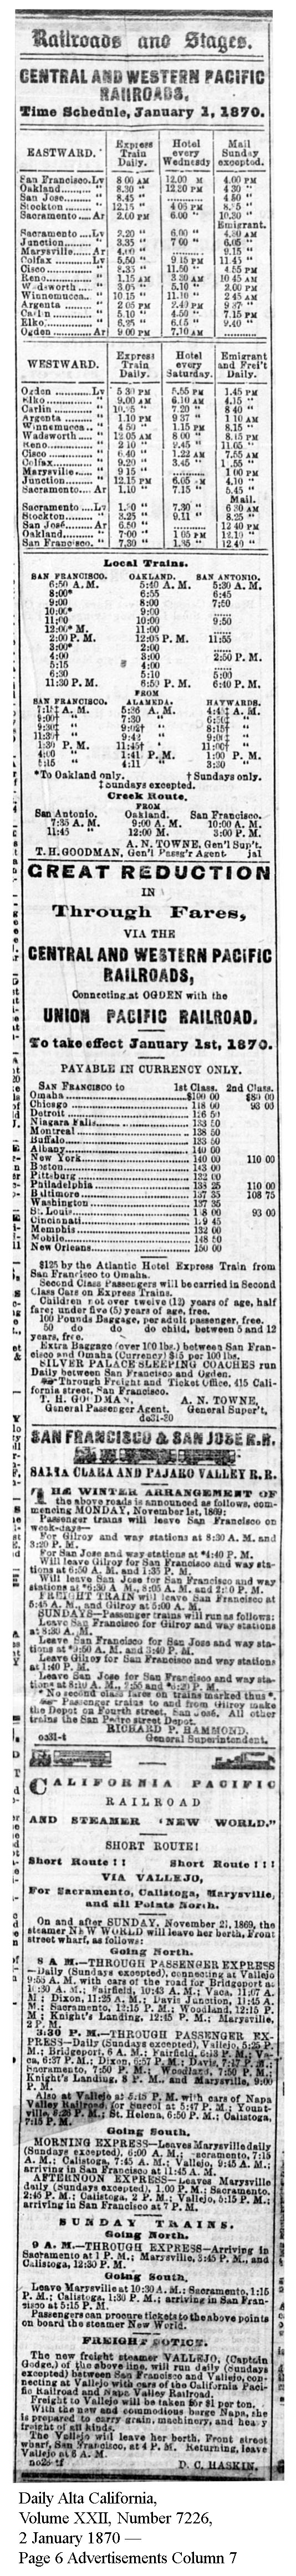 Daily Alta California, Volume XXII, Number 7226, 2 January 1870 - Page 6 Advertisements Column 7